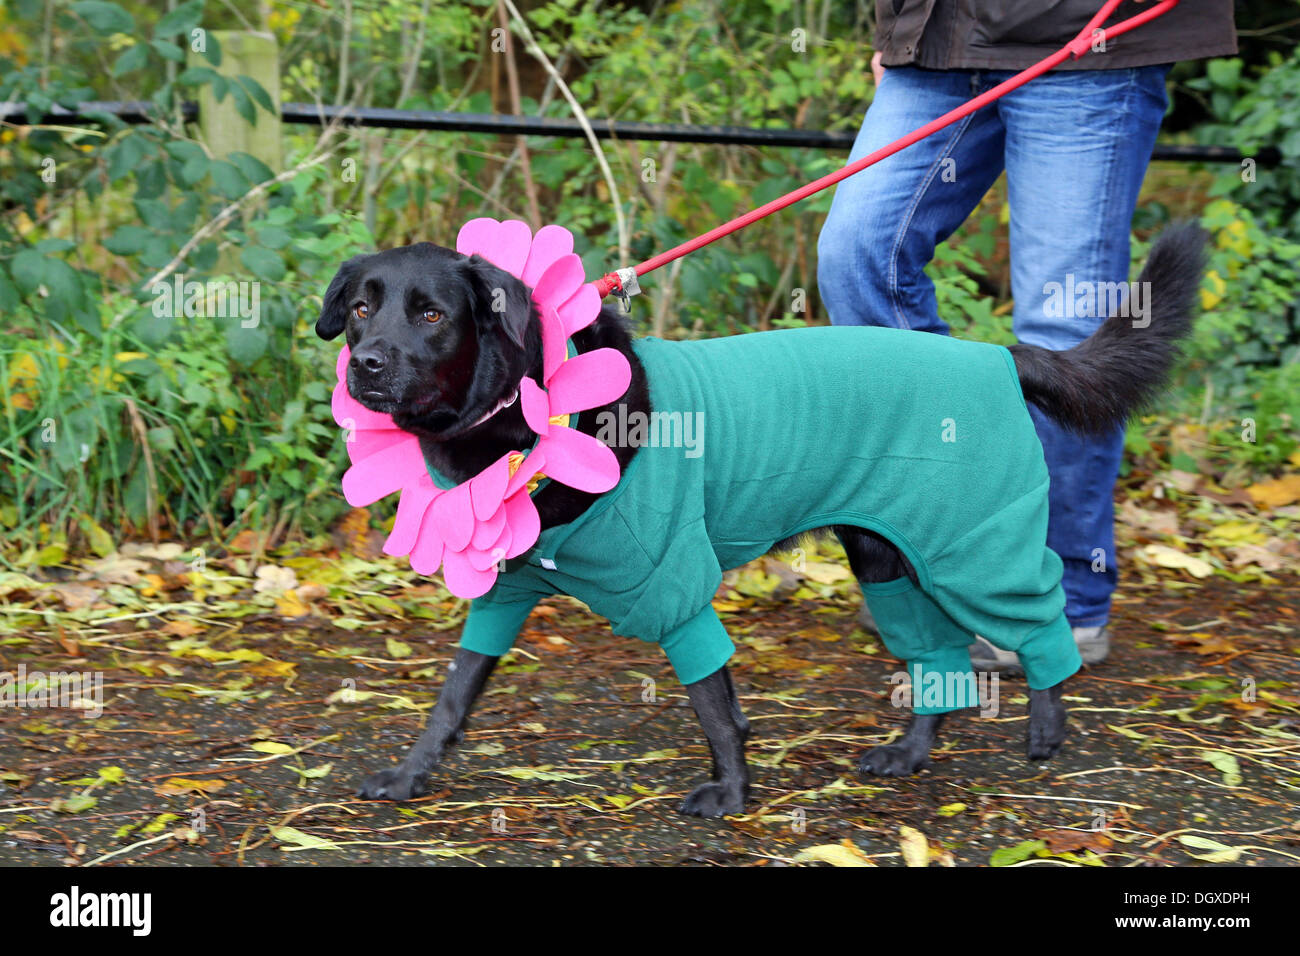 Dog In Fancy Dress Stock Photos & Dog In Fancy Dress Stock Images ...